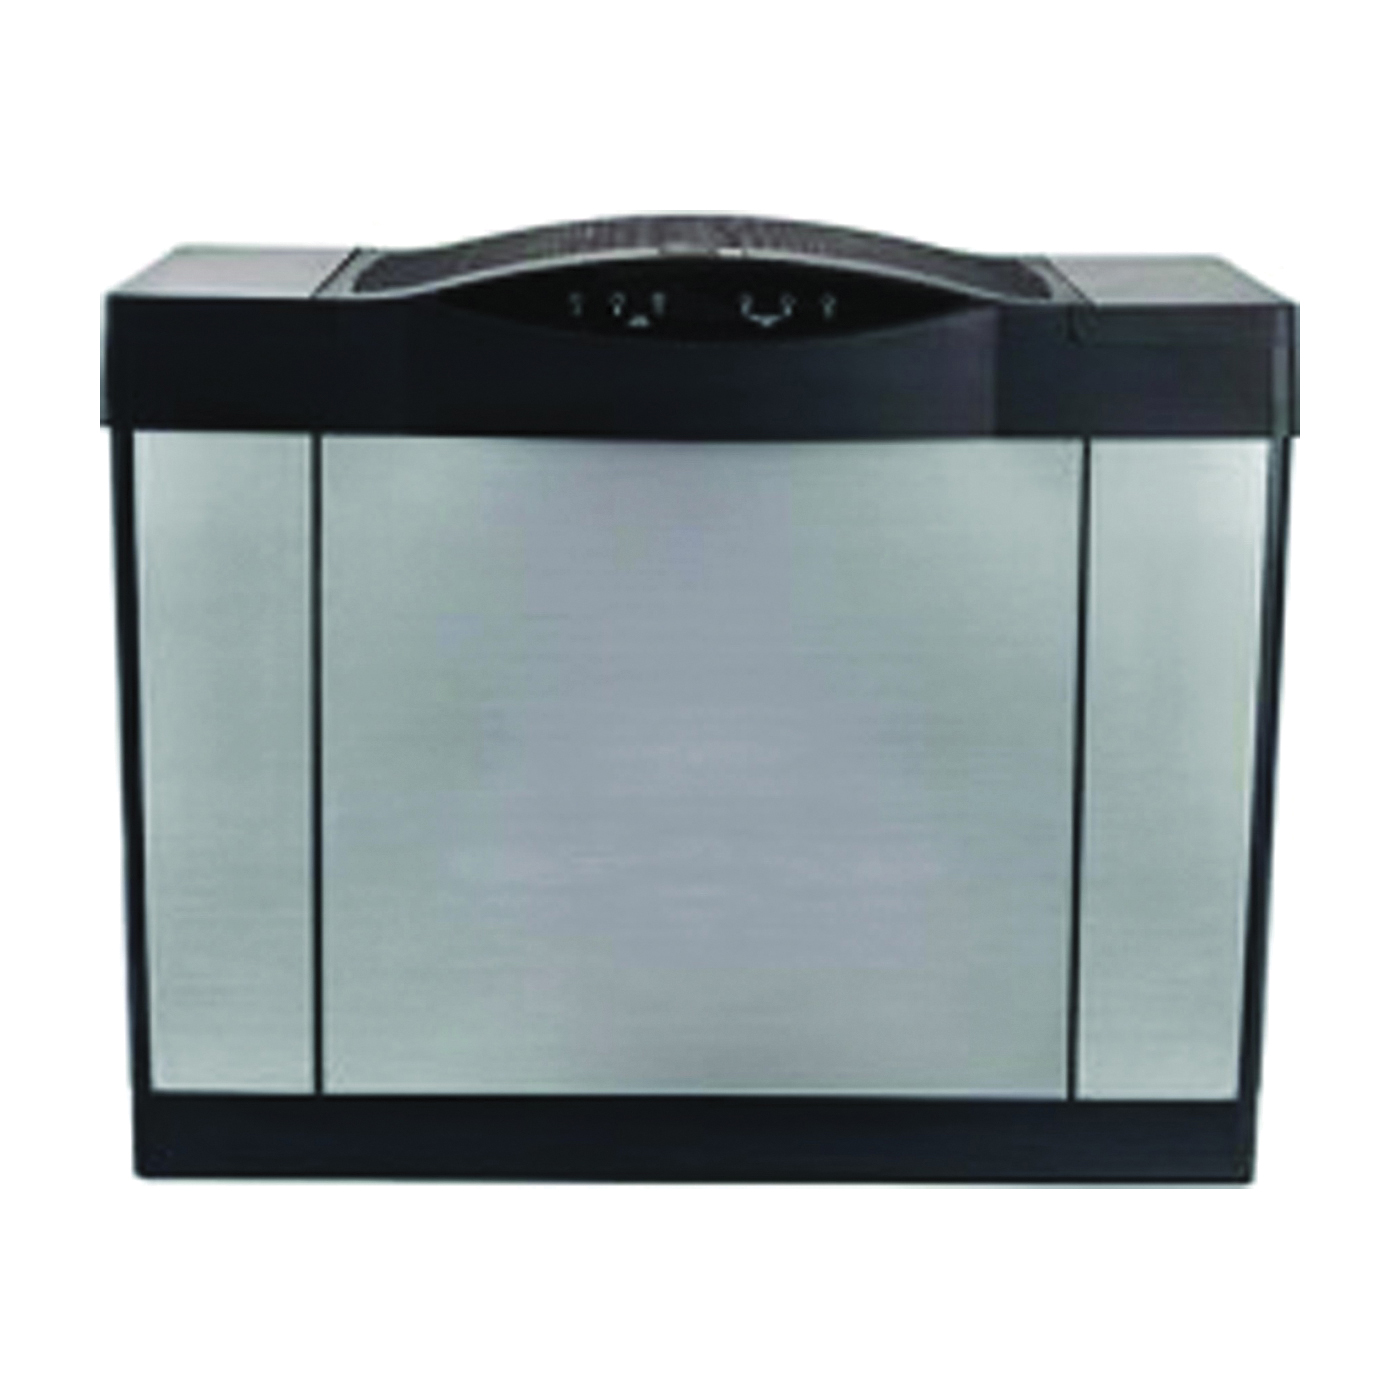 Picture of AIRCARE 4DTS 900 Evaporative Humidifier, 2 A, 120 V, 135 W, 9-Speed, 2600 sq-ft Coverage Area, 5.7 gal Tank